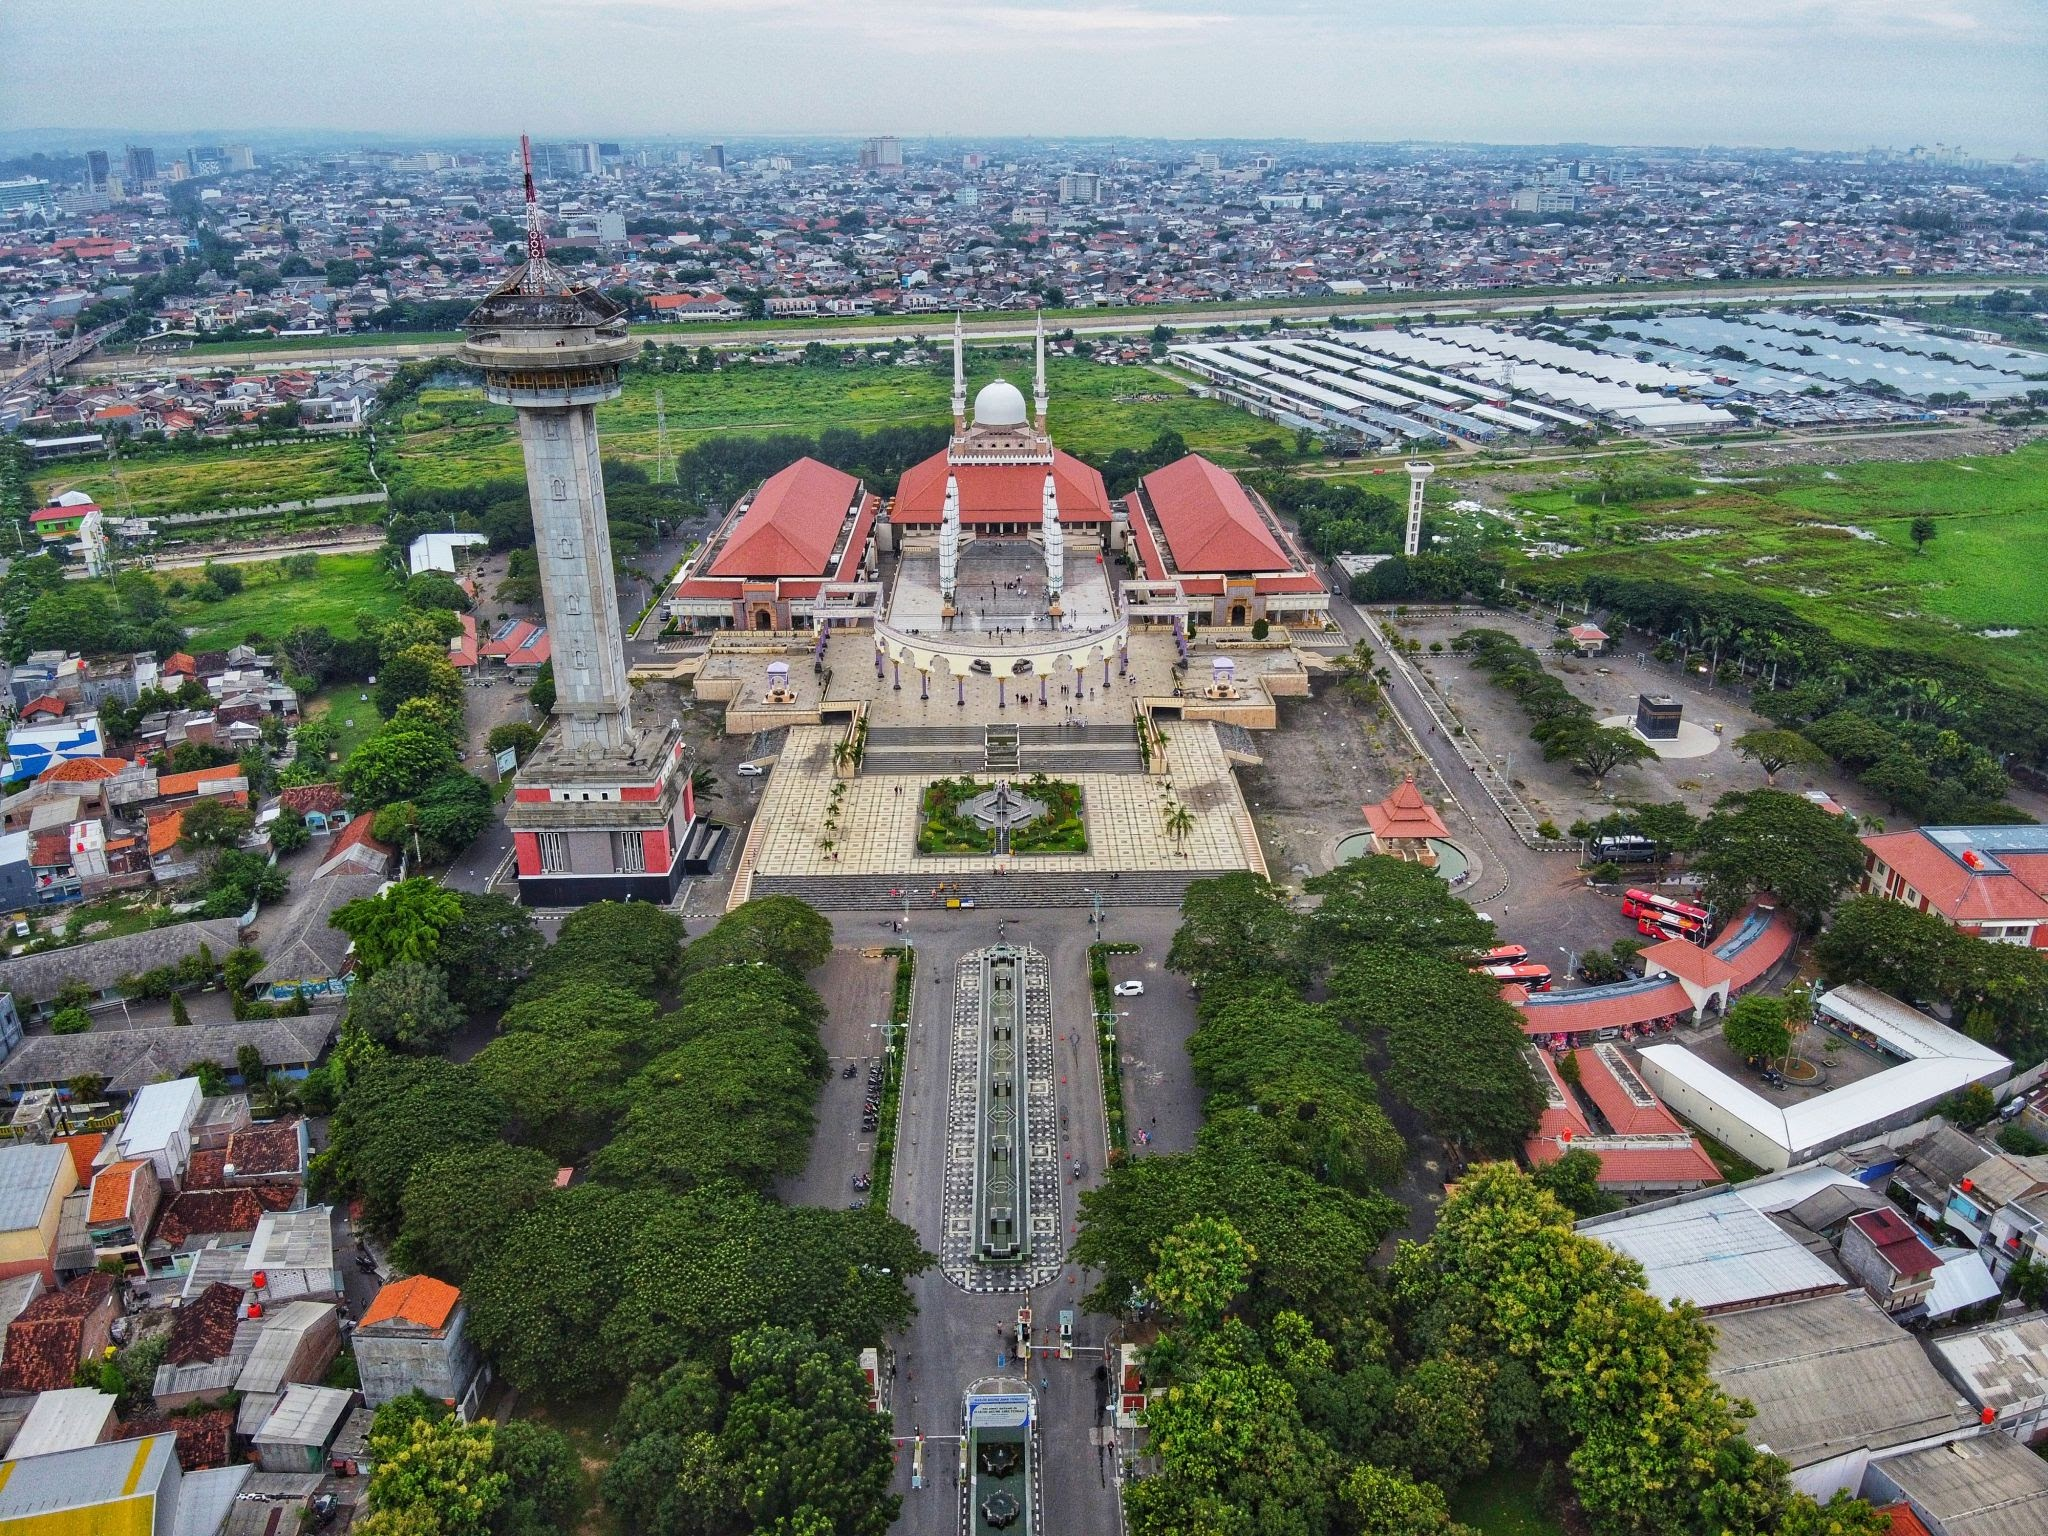 Grand Mosque of Central Java